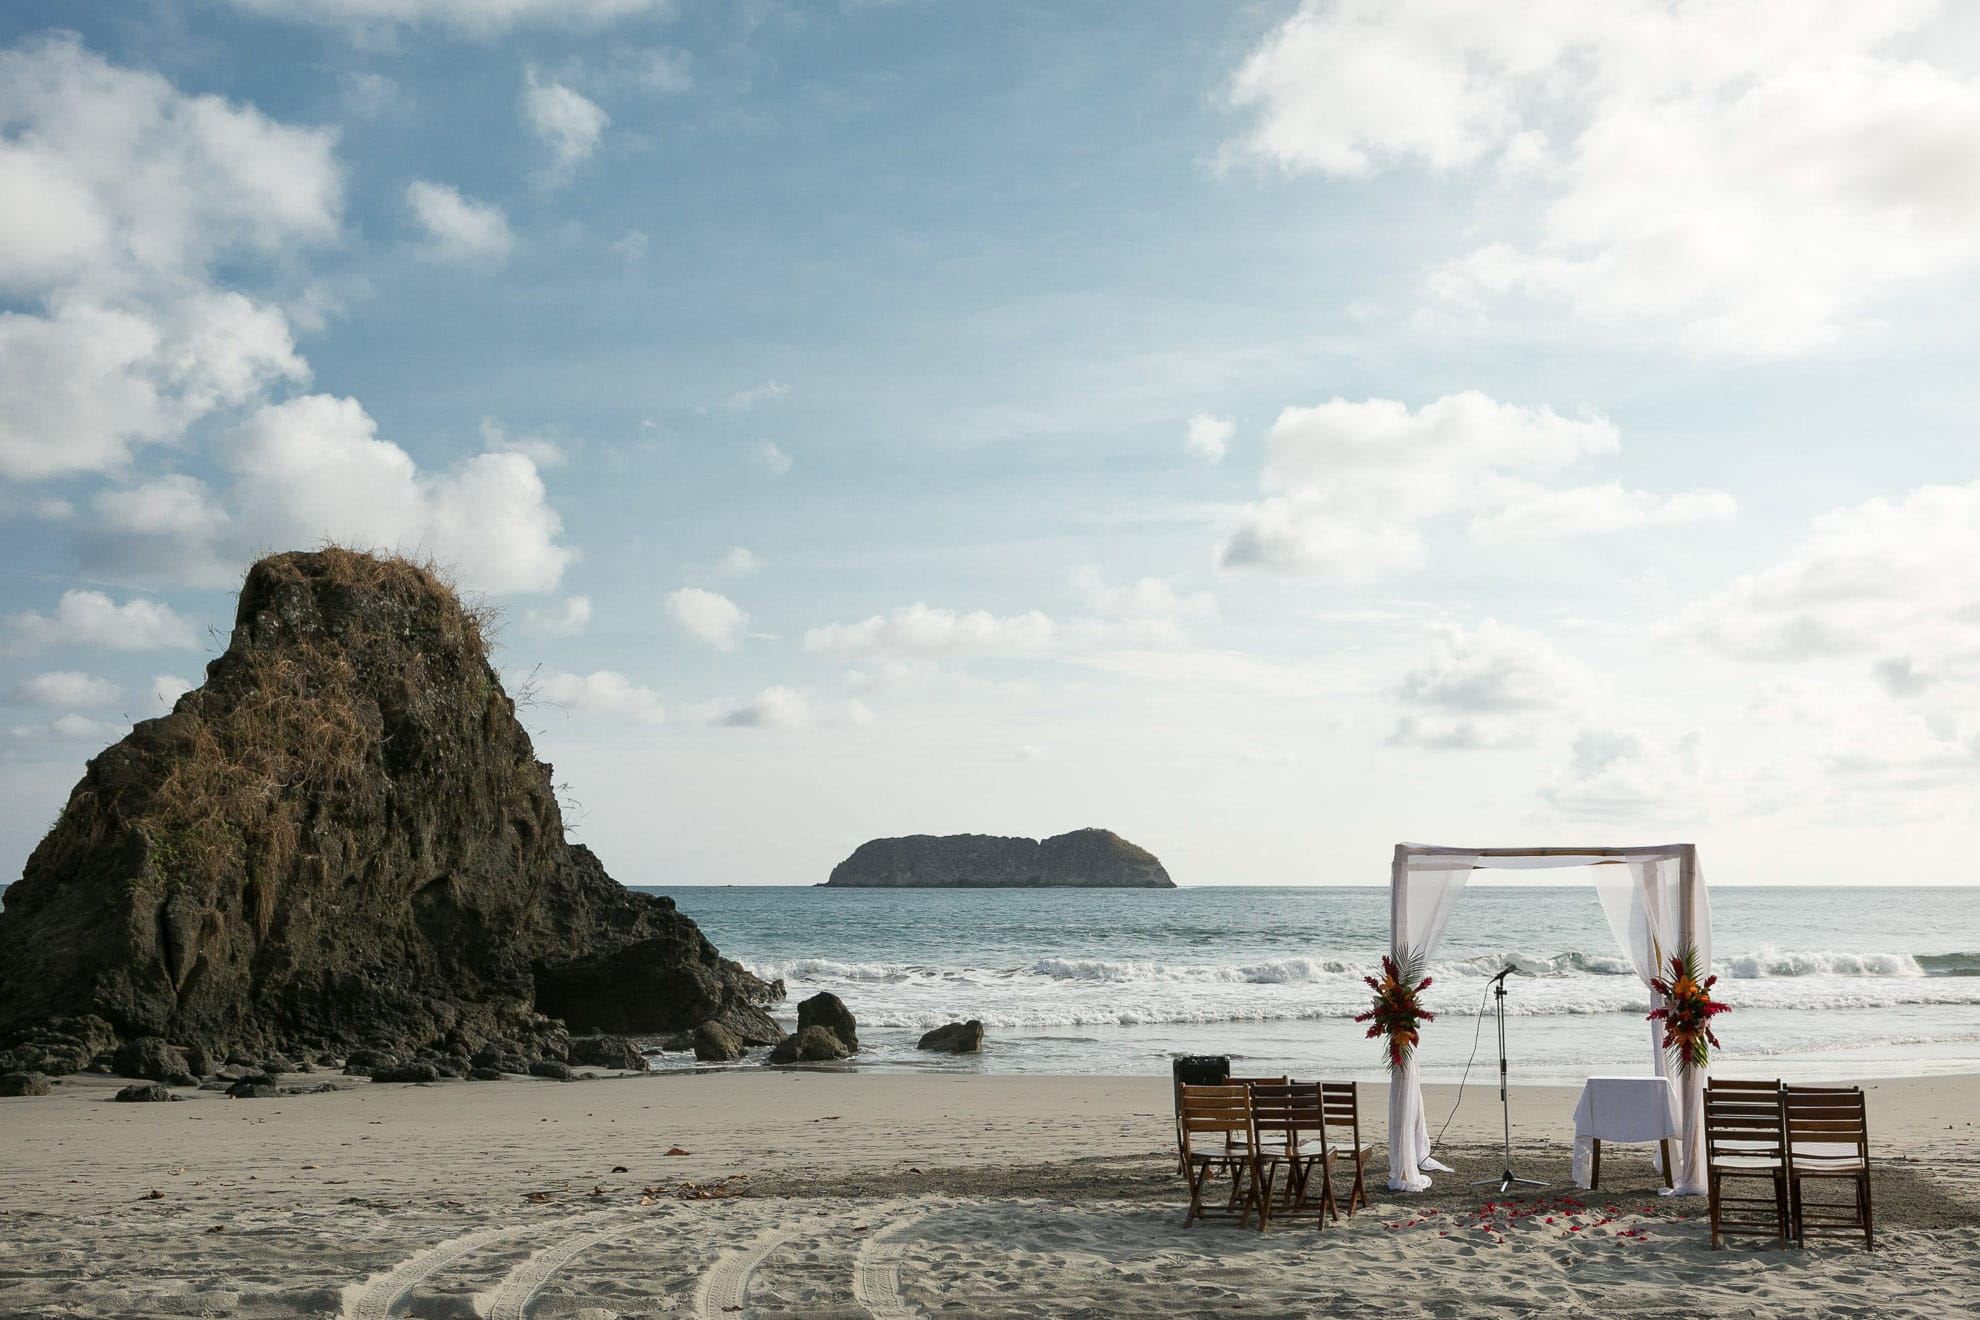 Beach ceremony in Costa Rica